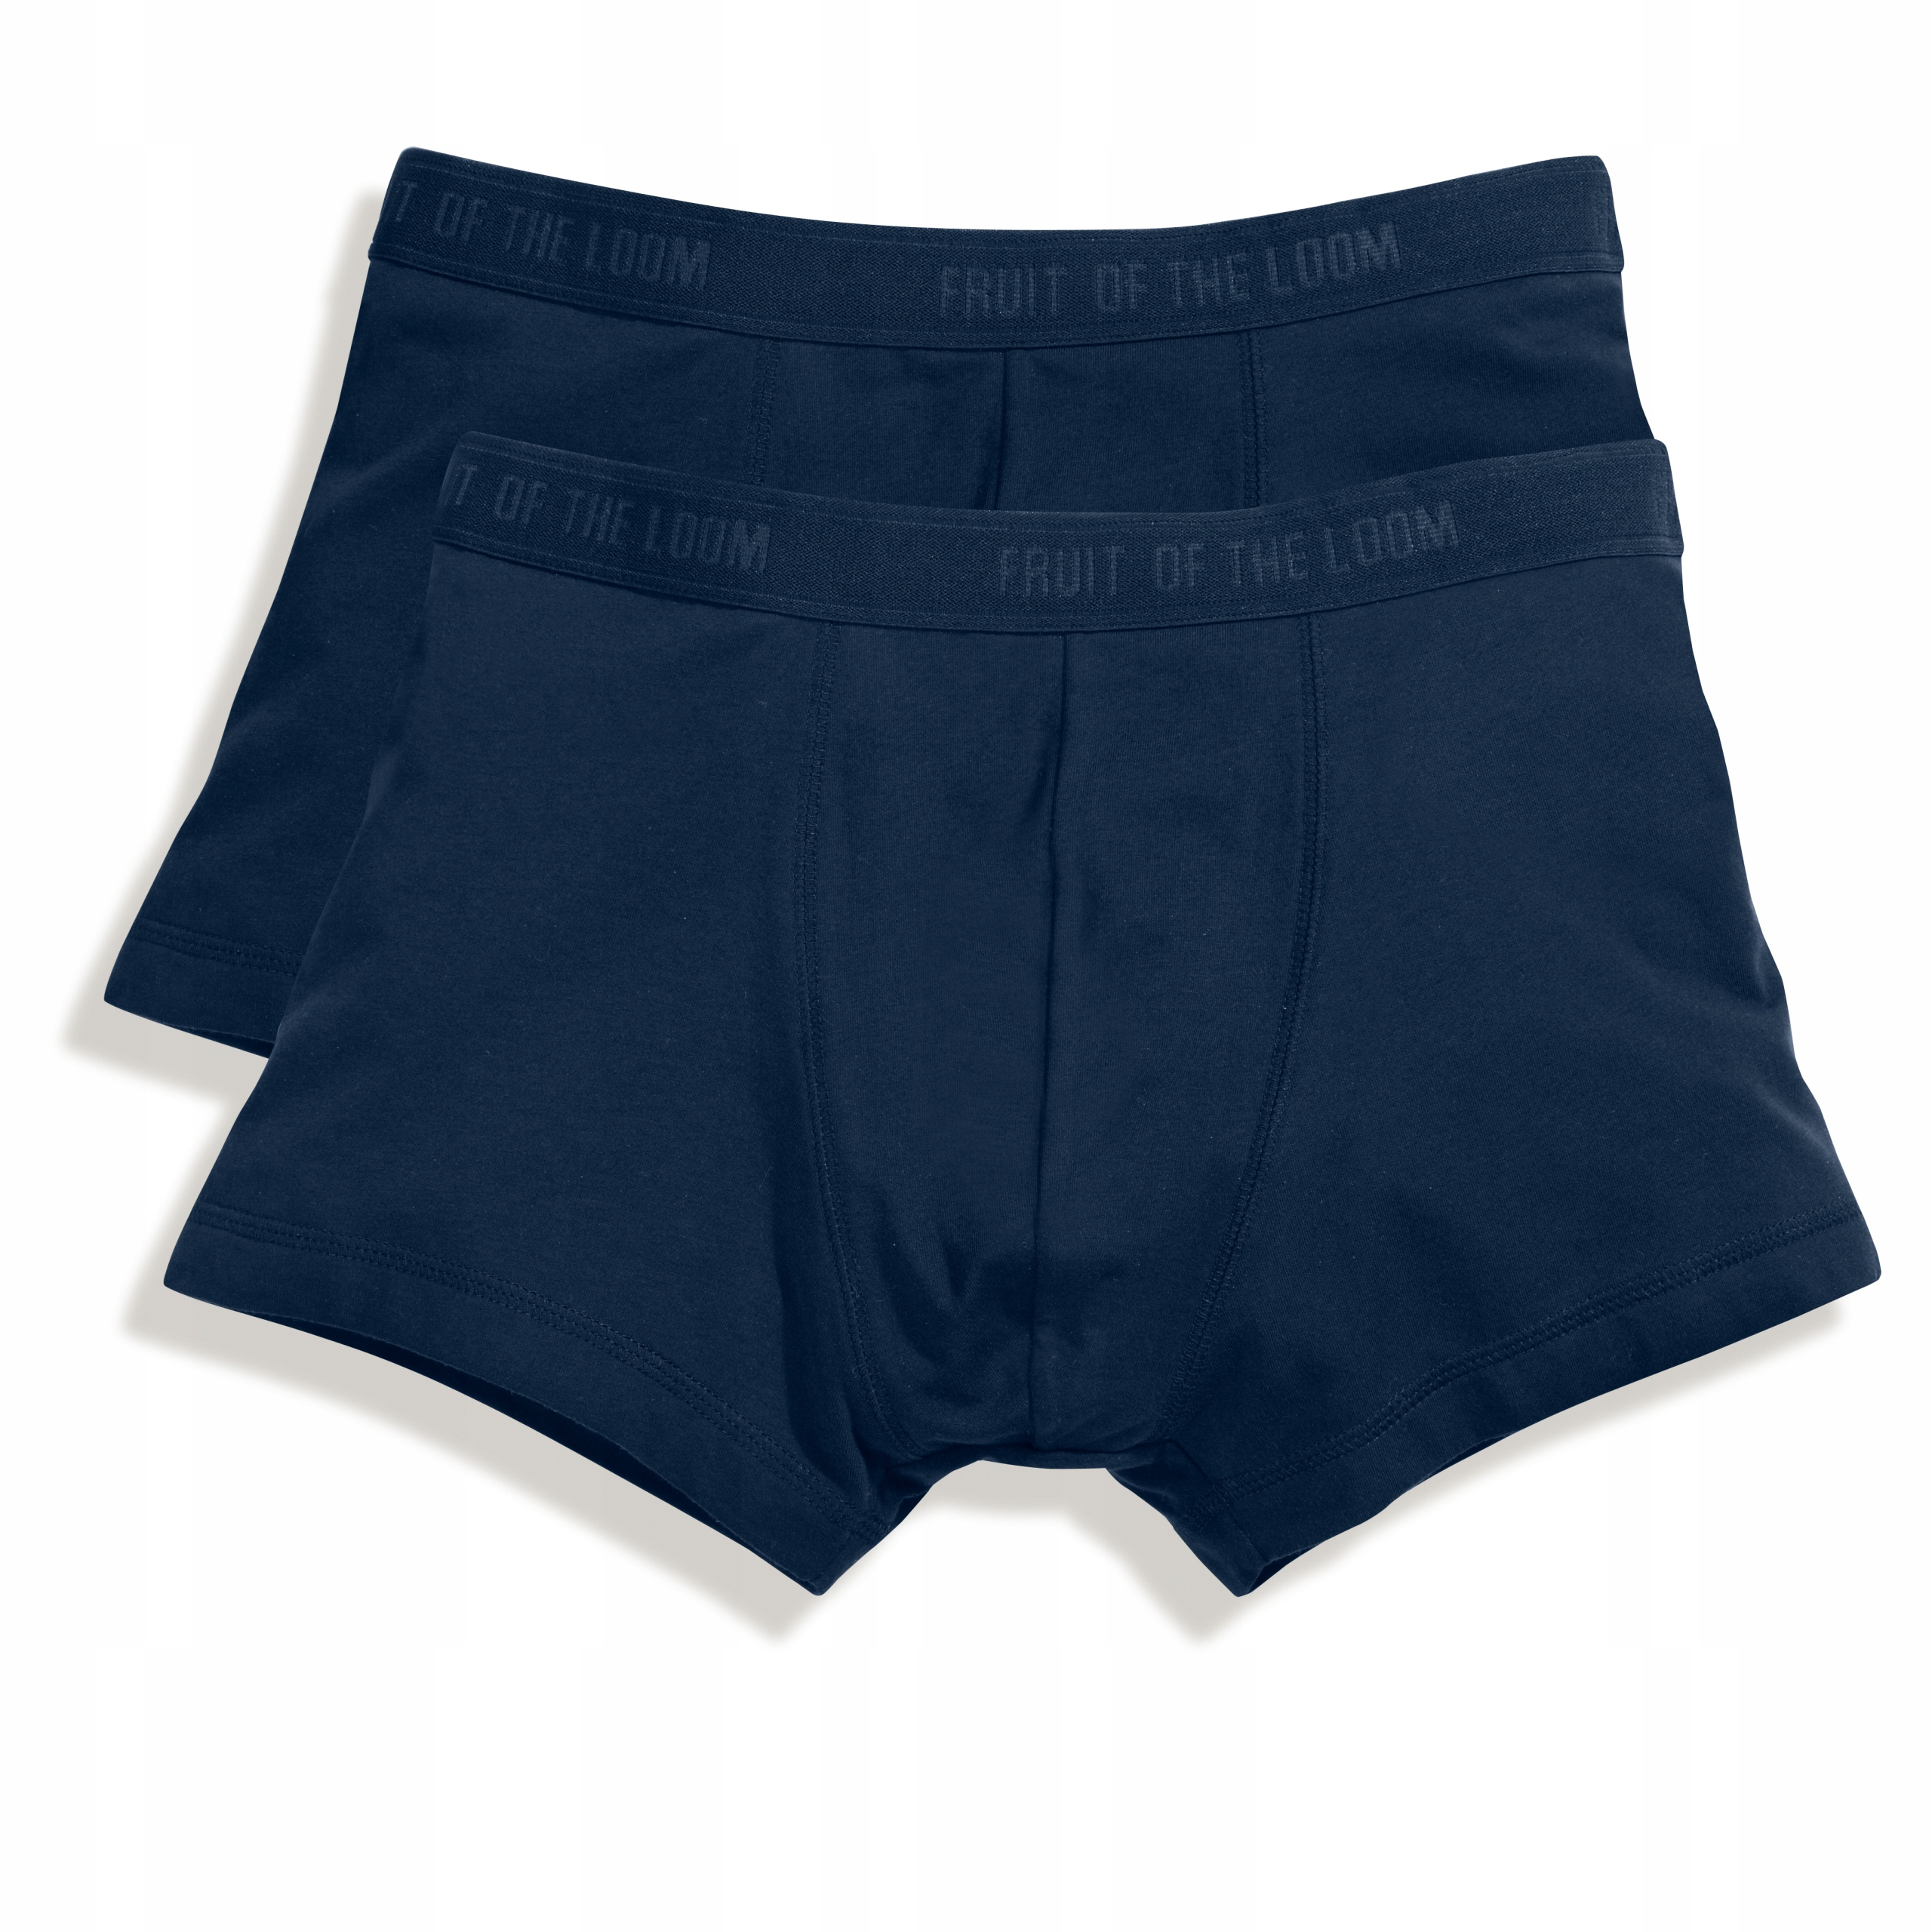 BOKSERKI MĘSKIE FRUIT OF THE LOOM CLASSIC NAVY L